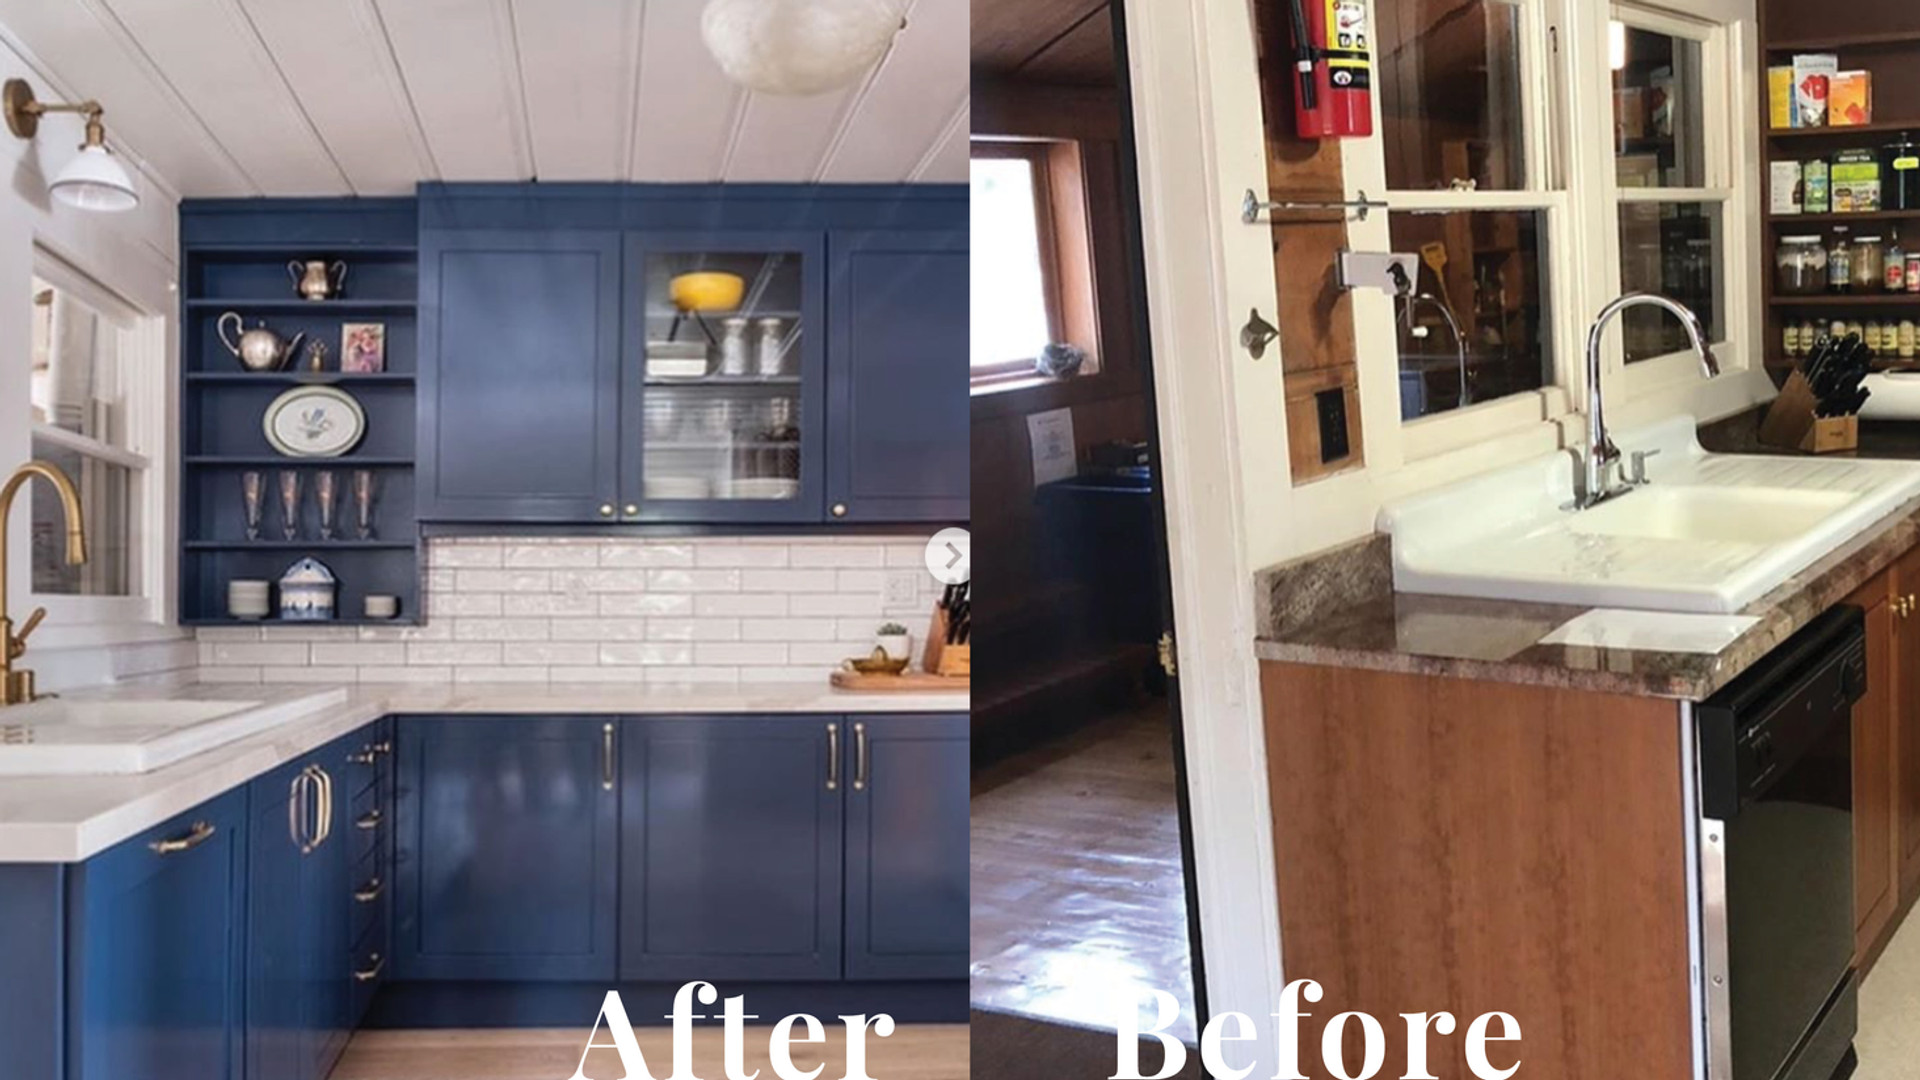 Tinsel house before and after3.jpg